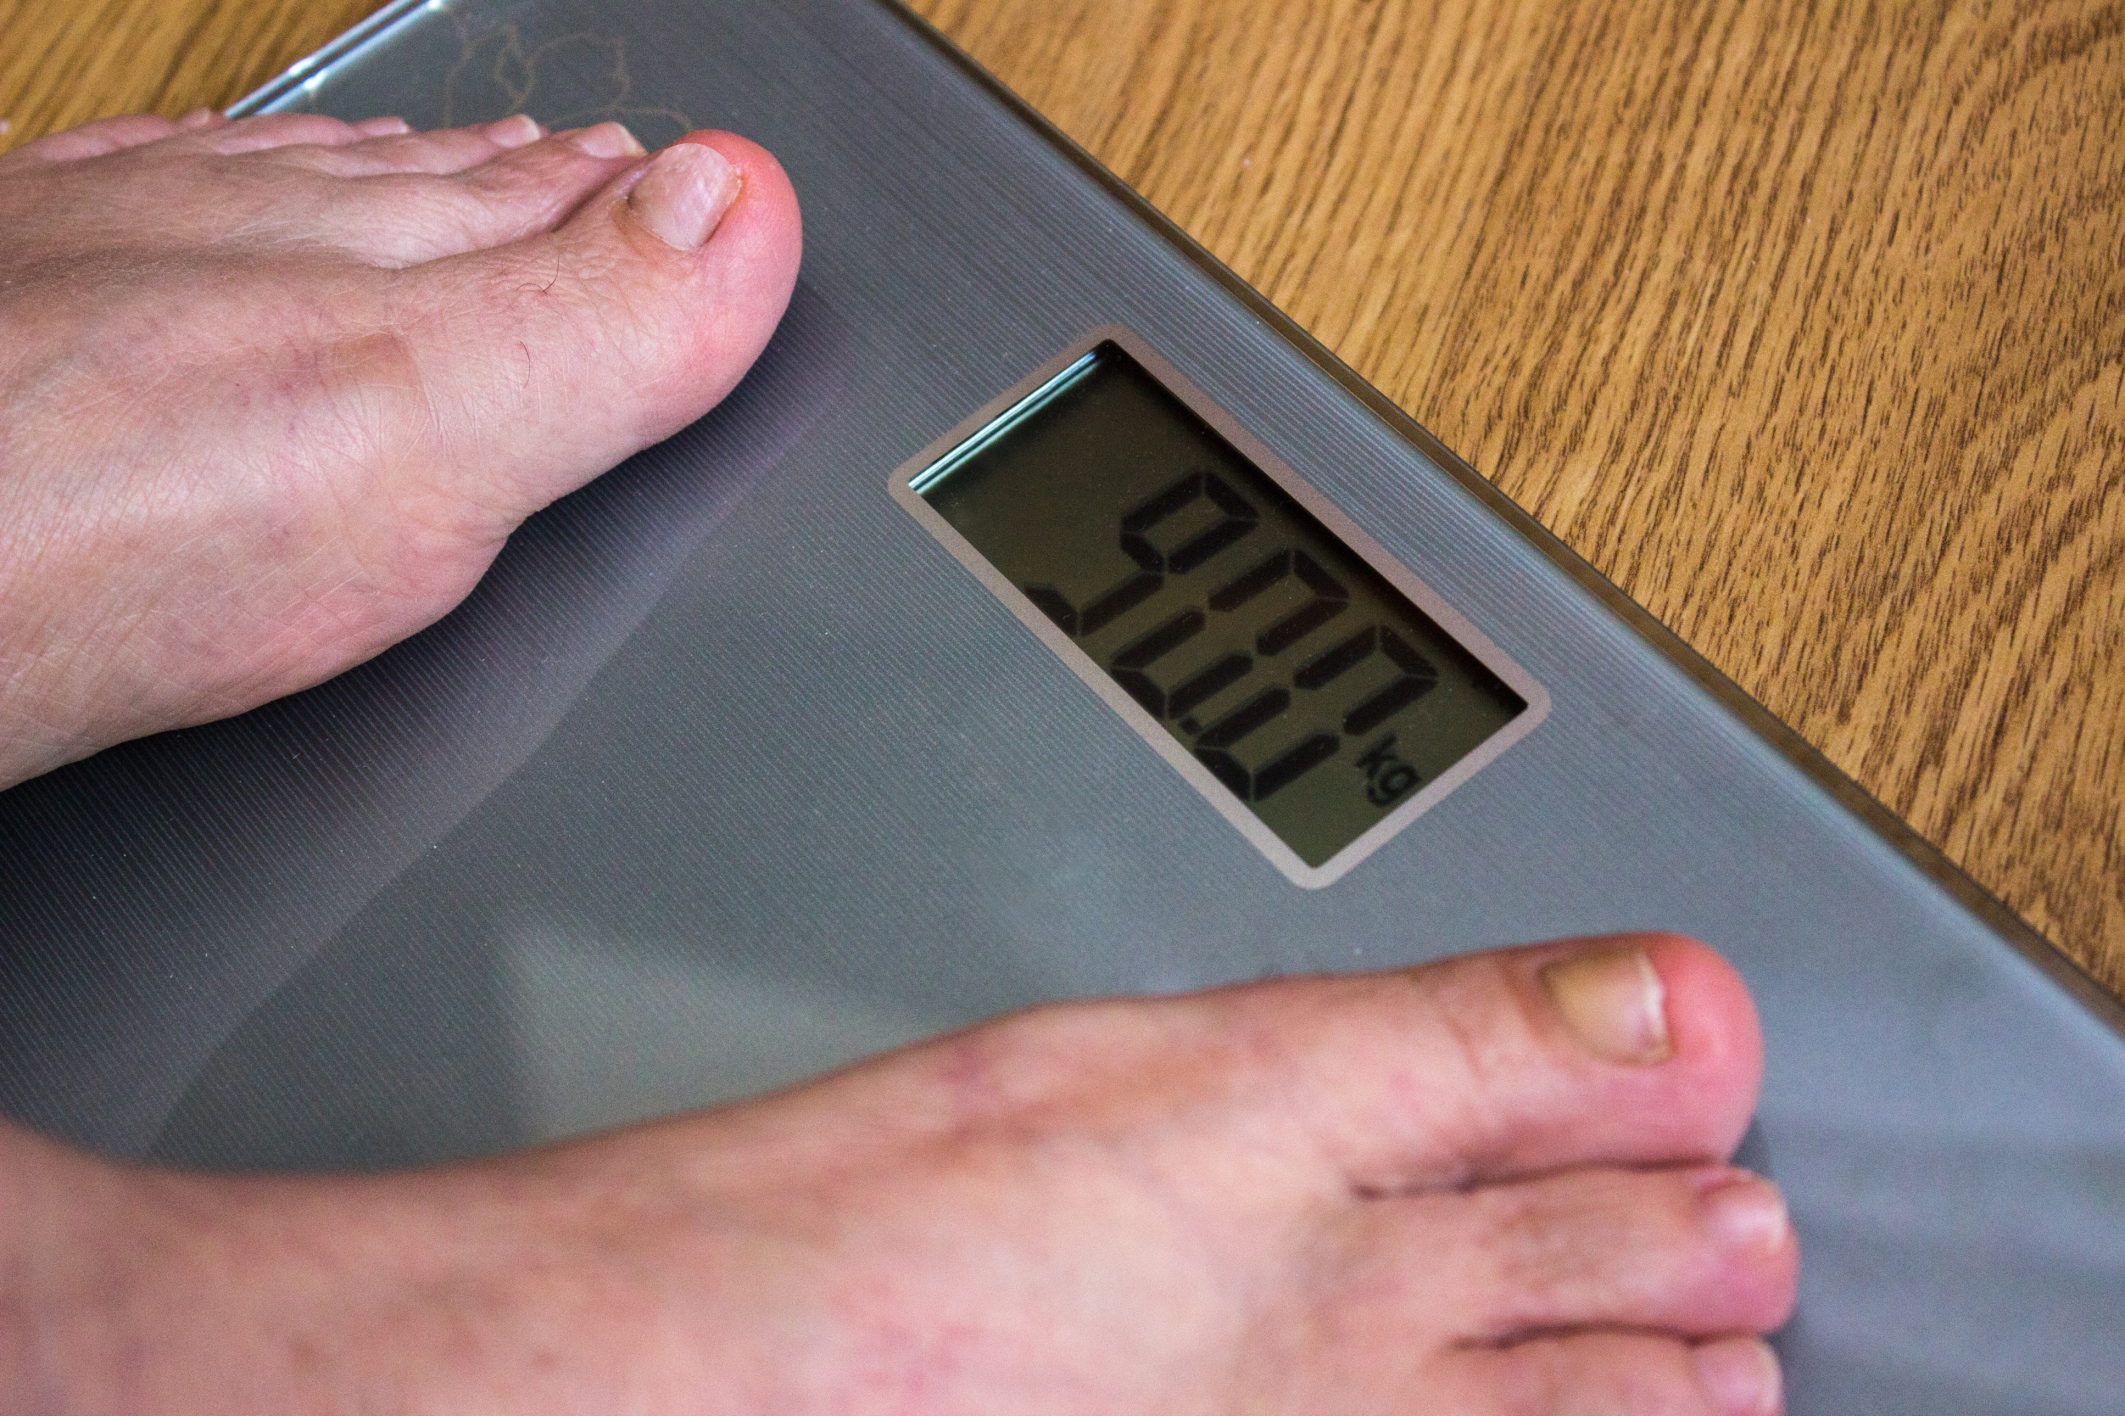 Most accurate bathroom scale 2014 - Most Accurate Bathroom Scale 2014 51